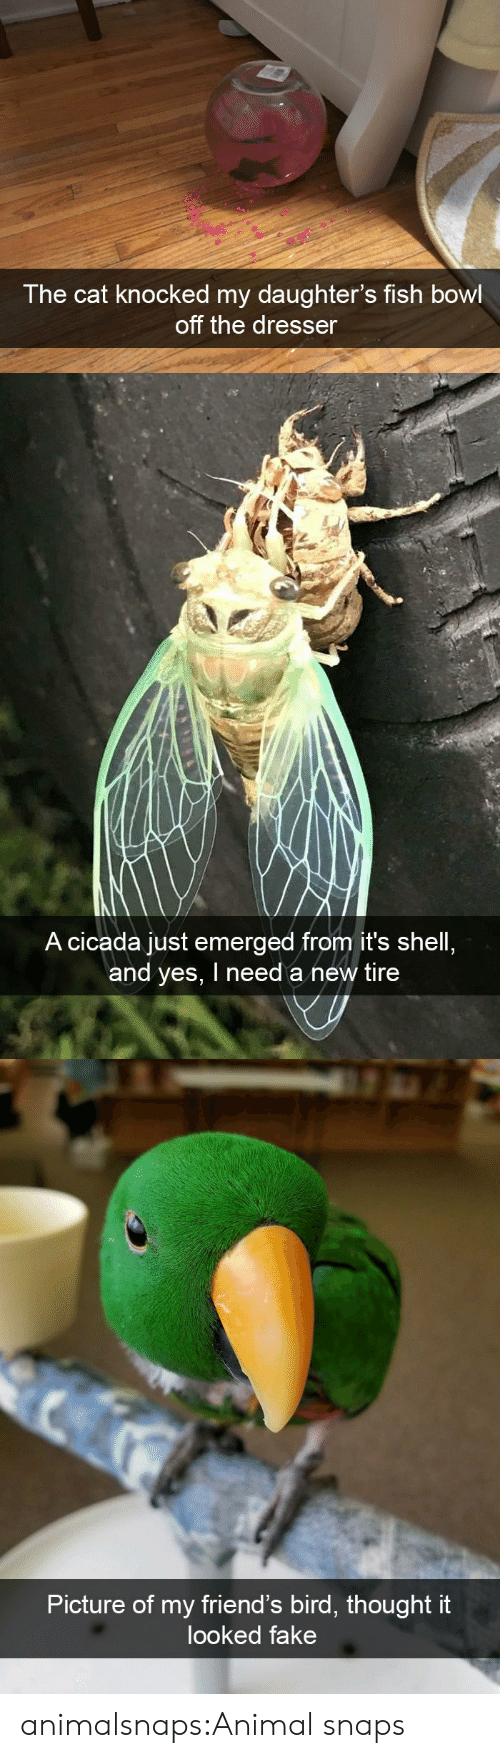 Fake, Friends, and Target: The cat knocked my daughter's fish bowl  off the dresser   A cicada just emerged from it's shell  and yes, I need a new tire   Picture of my friend's bird, thought it  looked fake animalsnaps:Animal snaps